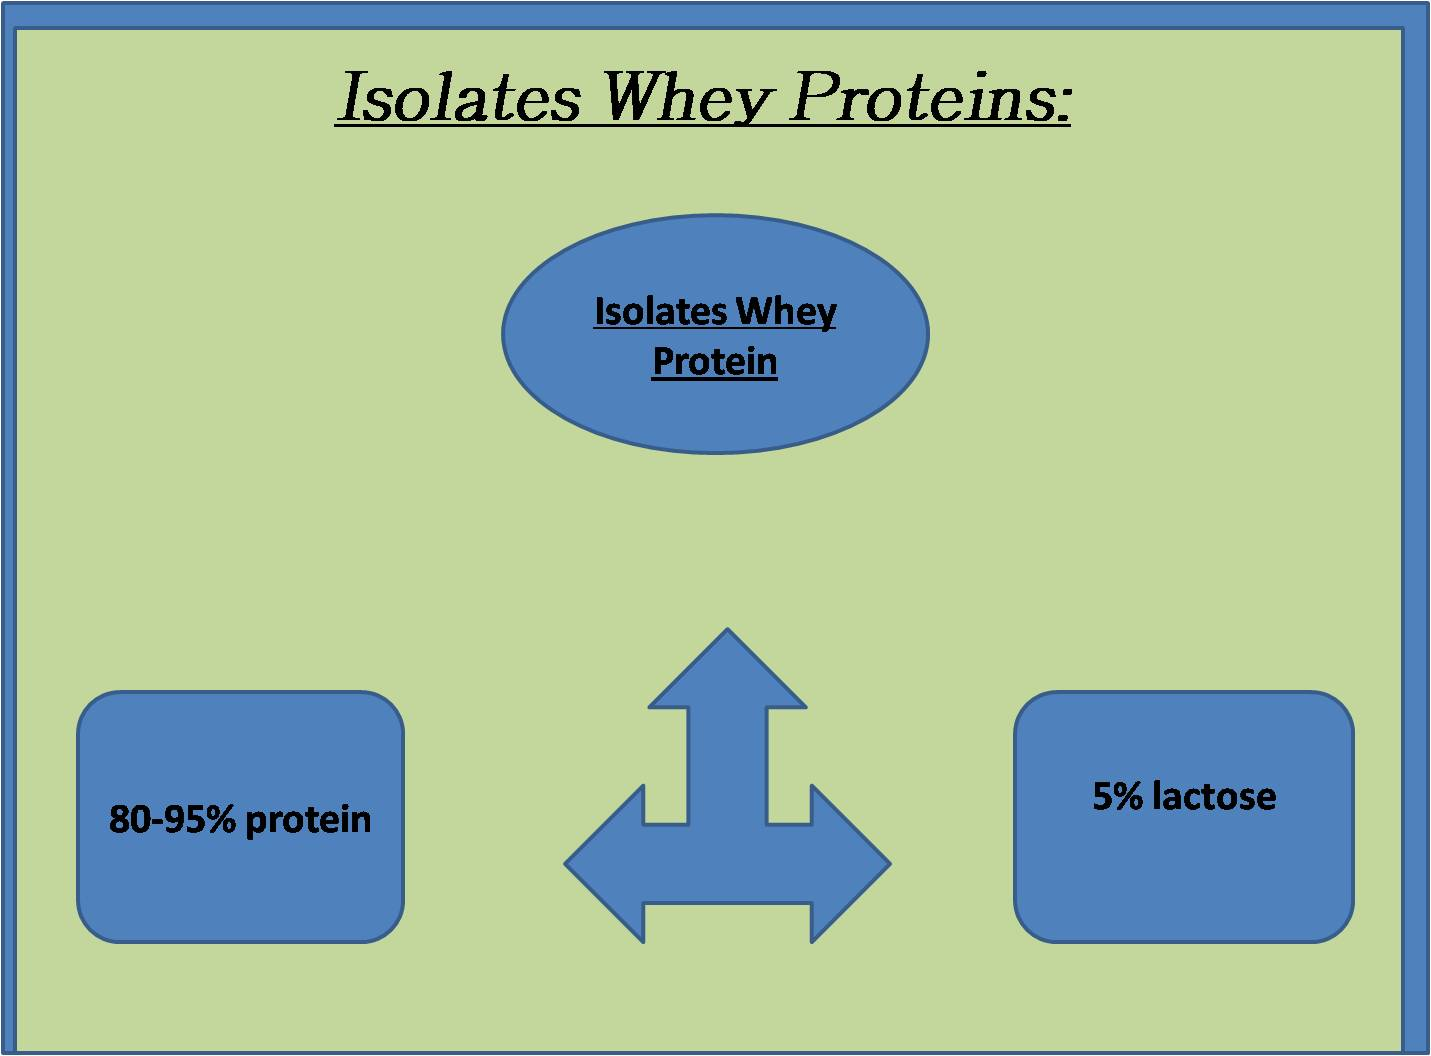 Isolates Whey Protein